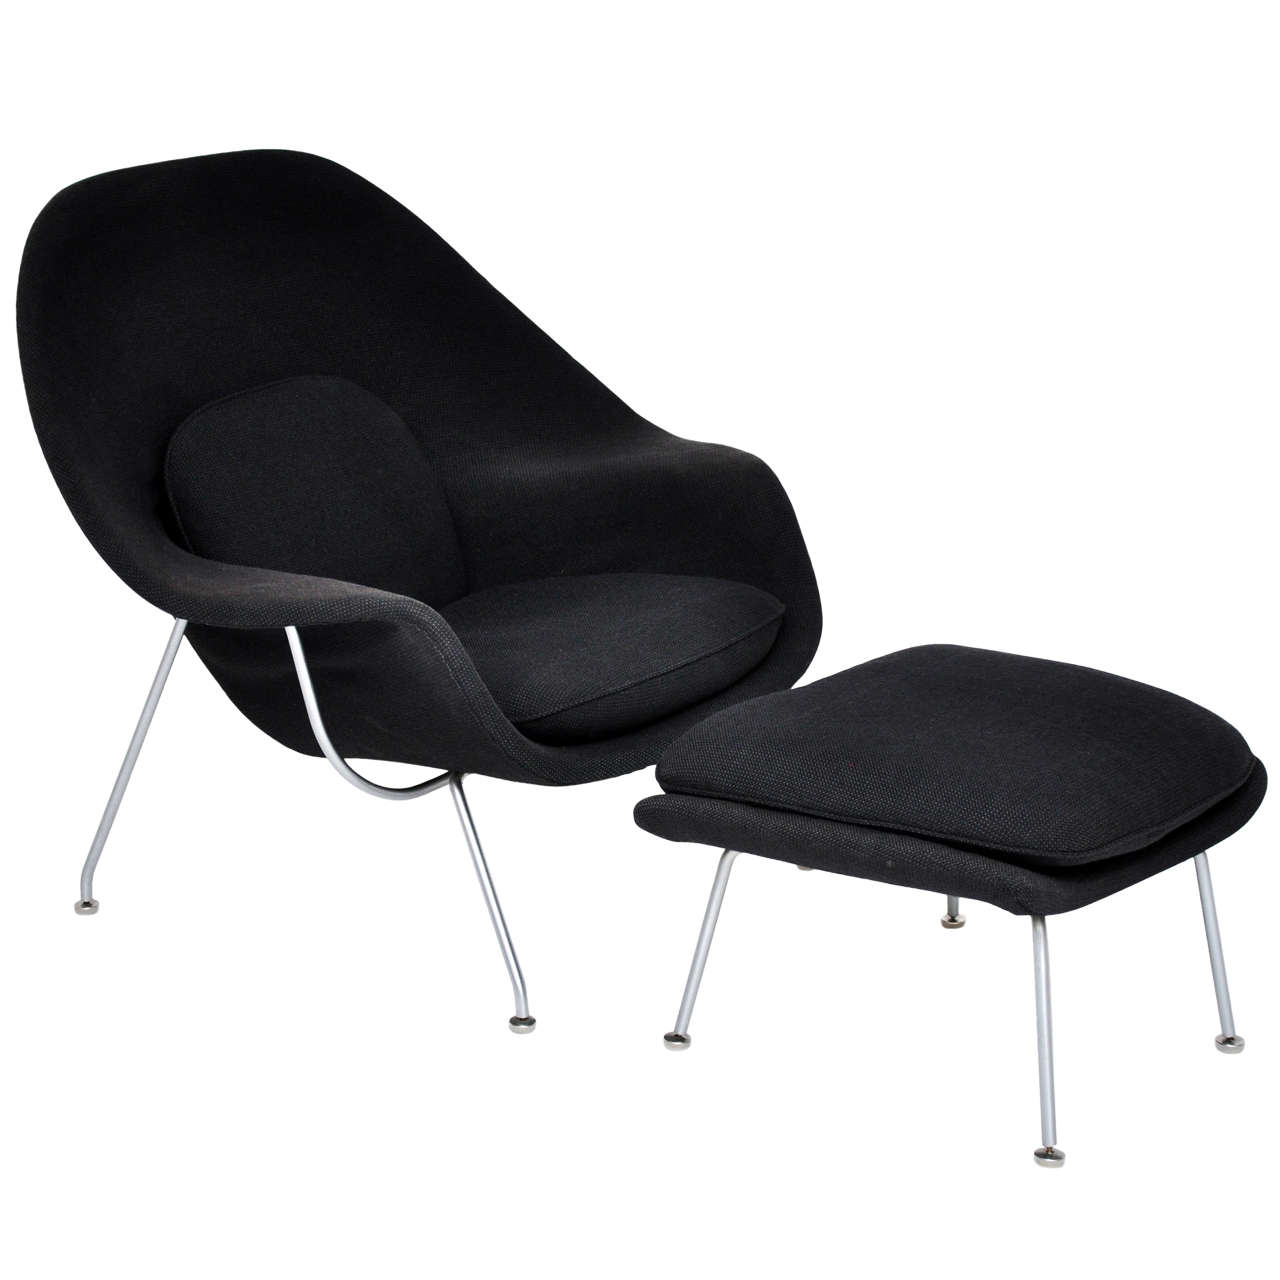 Eero saarinen womb chair for knoll at 1stdibs - Vintage womb chair for sale ...